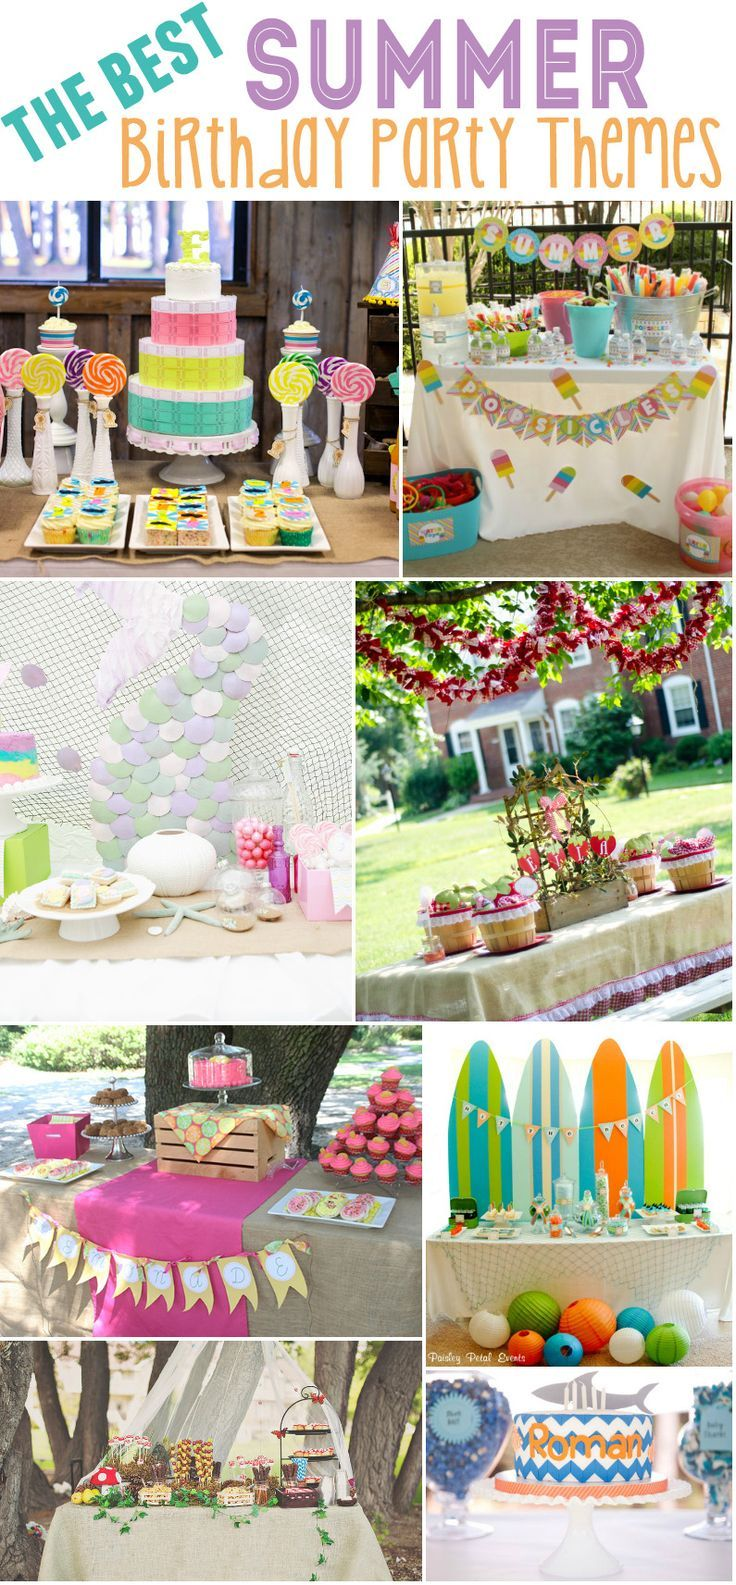 15 Best Summer Birthday Party Themes Design Dazzle Fun Birthday Party Party Themes Summer Birthday Party